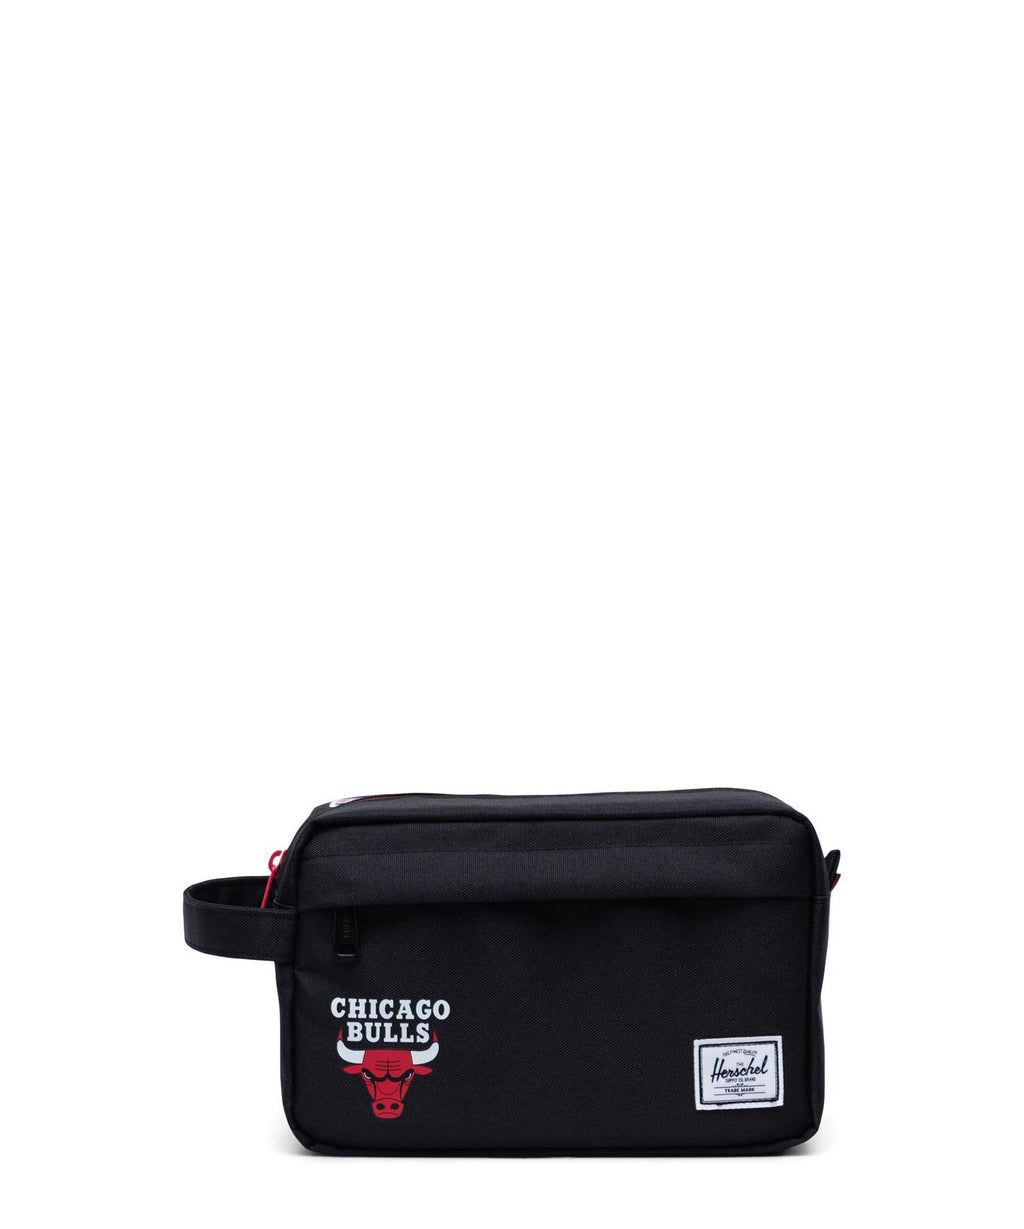 Chicago Bulls Chapter Organizer Bag Black/Red